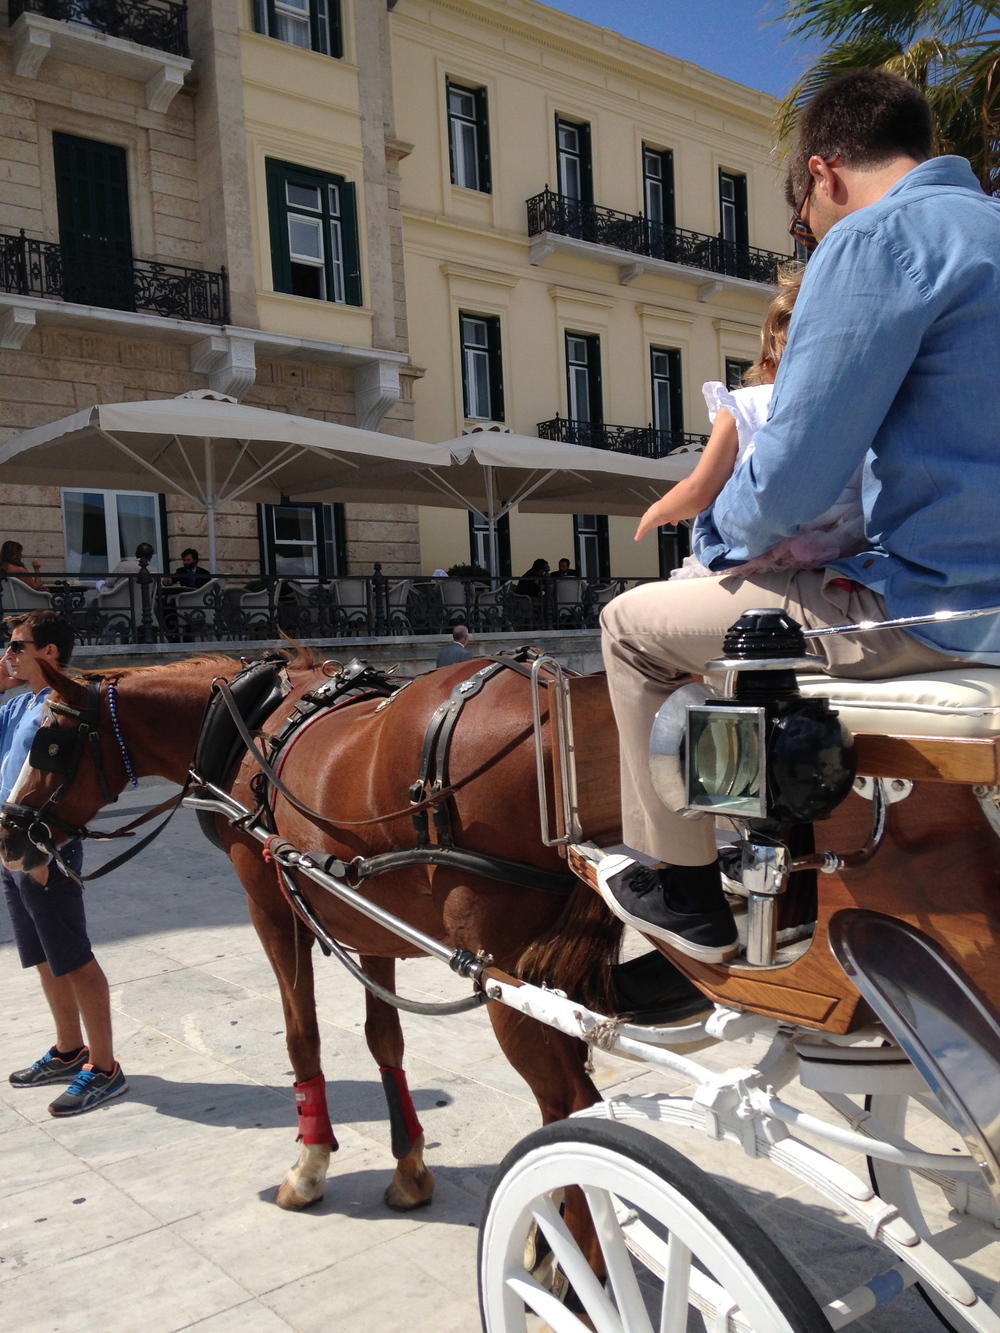 spetses horse riding poseidonio hotel day trip carriage